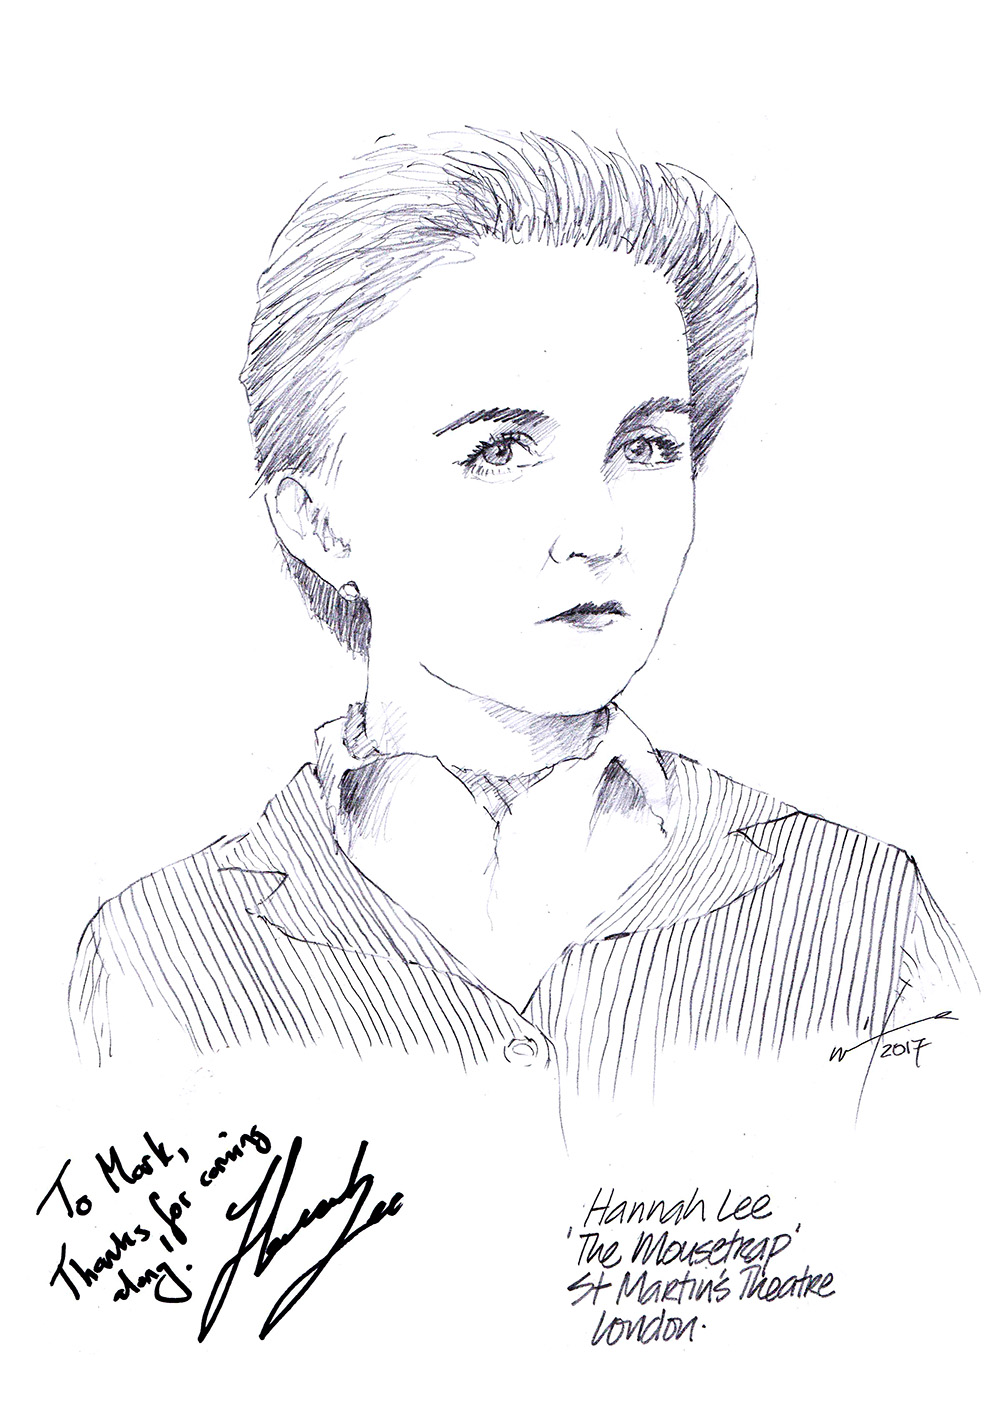 Hannah Lee drawing, The Mousetrap, West End